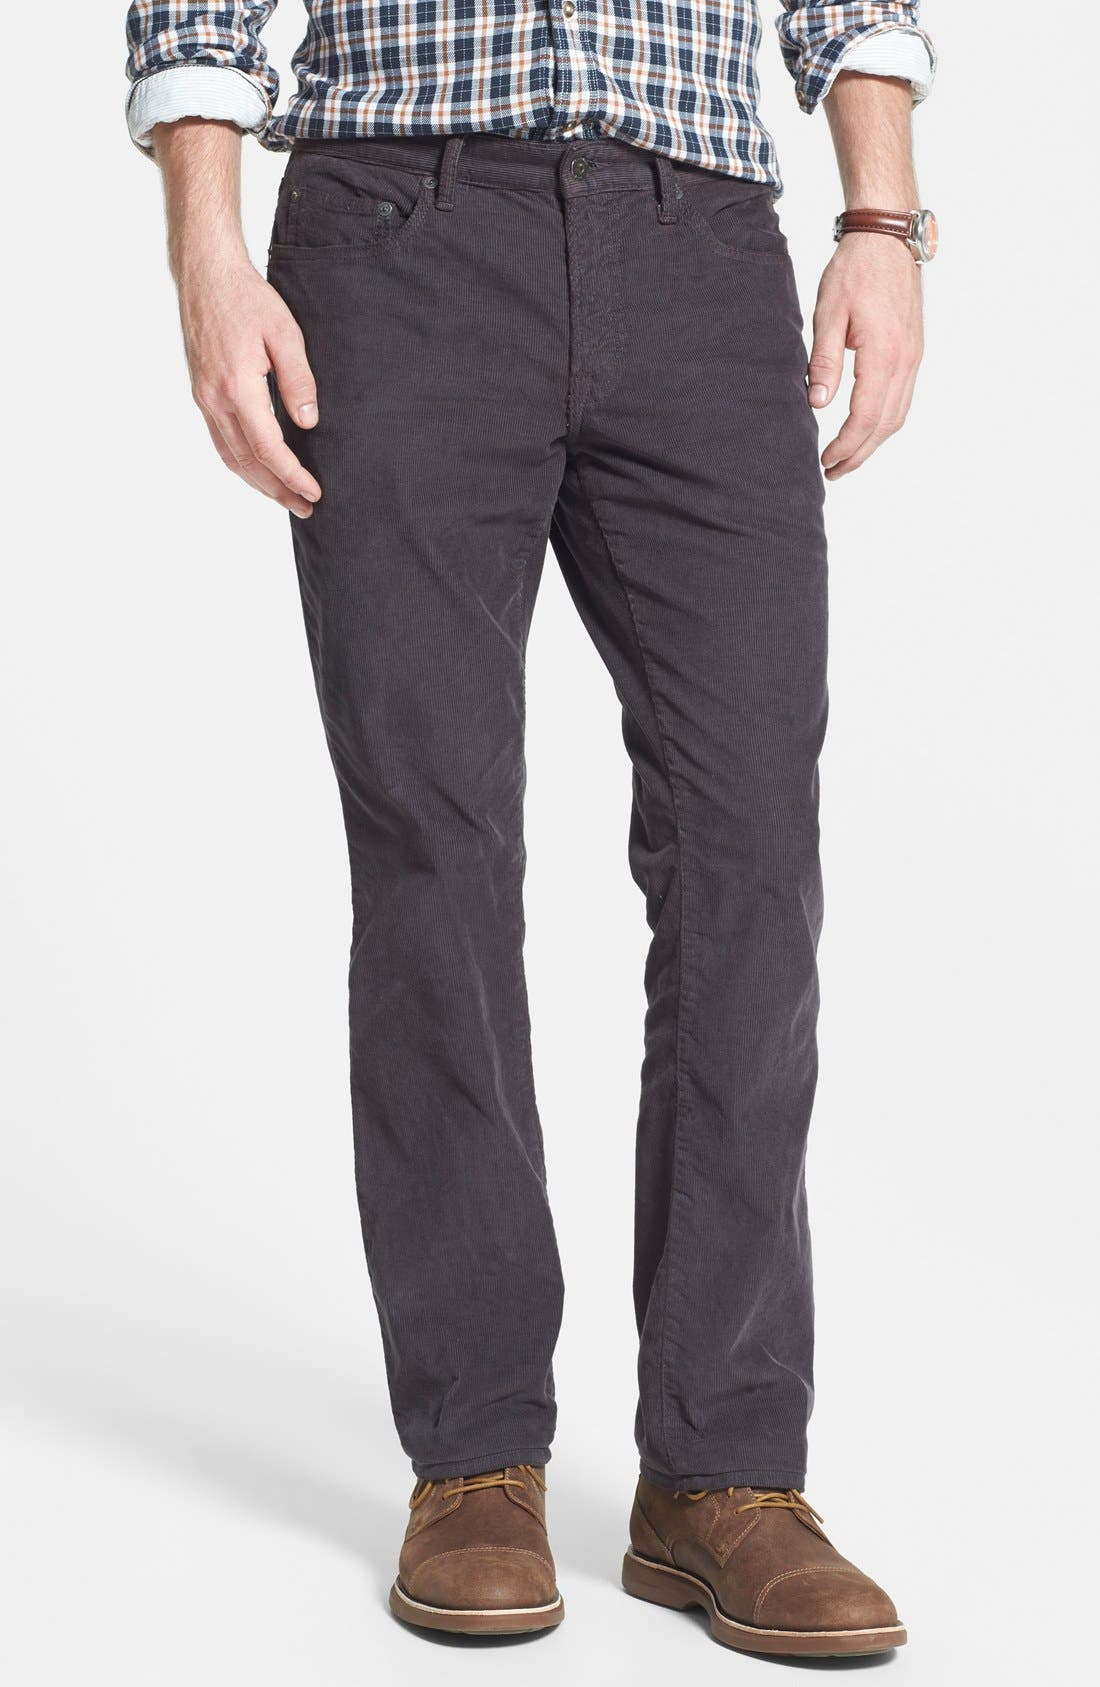 BONOBOS,                             Straight Leg Five-Pocket Corduroy Pants,                             Main thumbnail 1, color,                             020